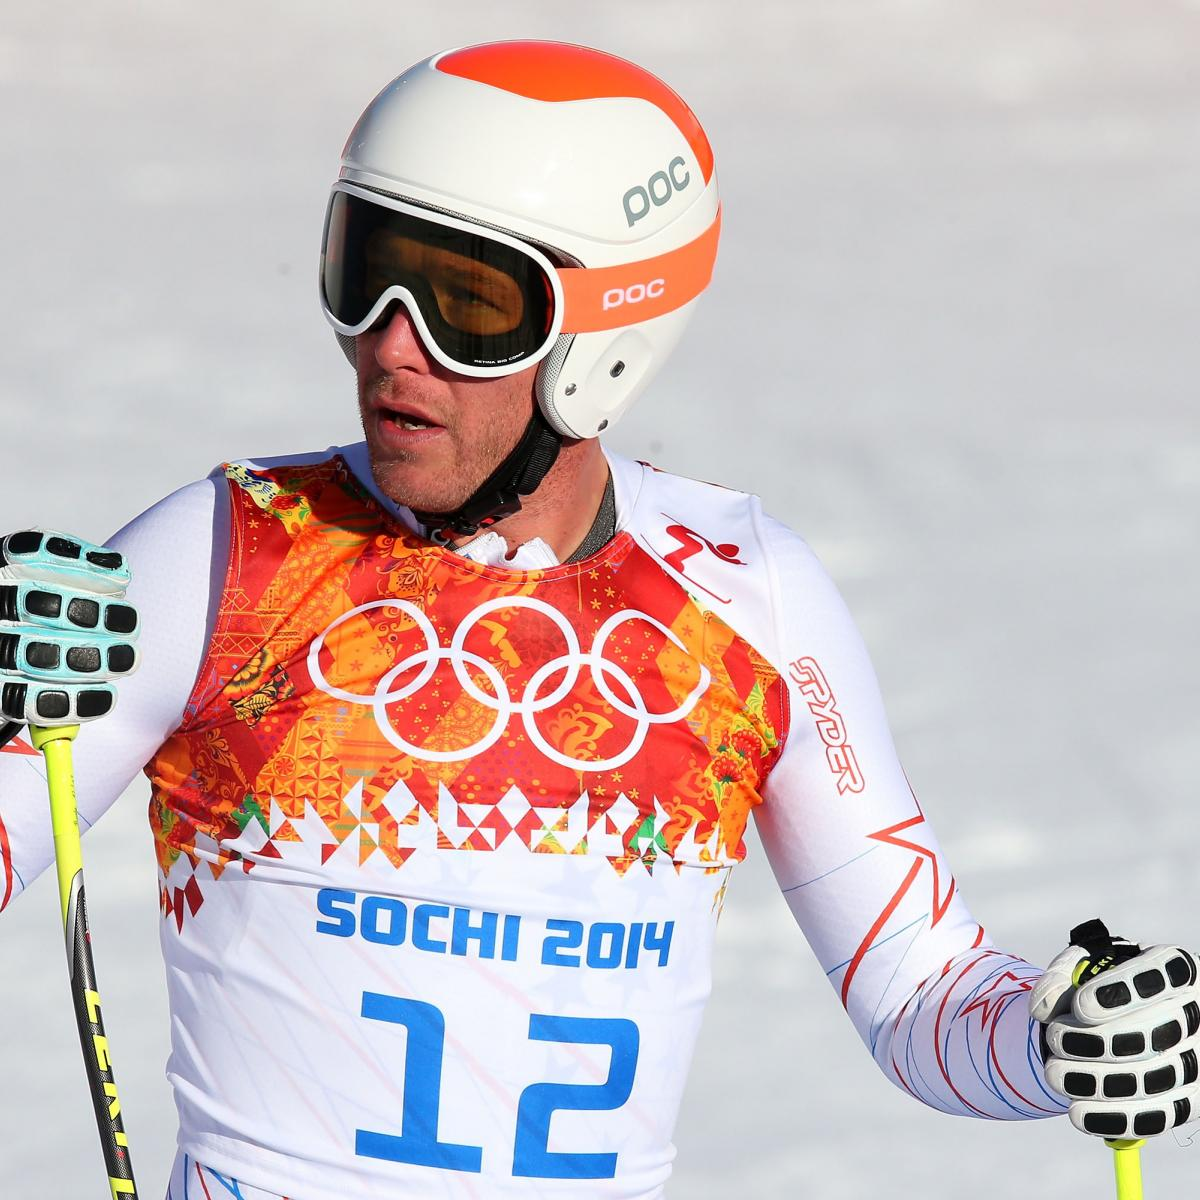 Bode Miller: Bode Miller Fails To Medal In Men's Super Combined Final